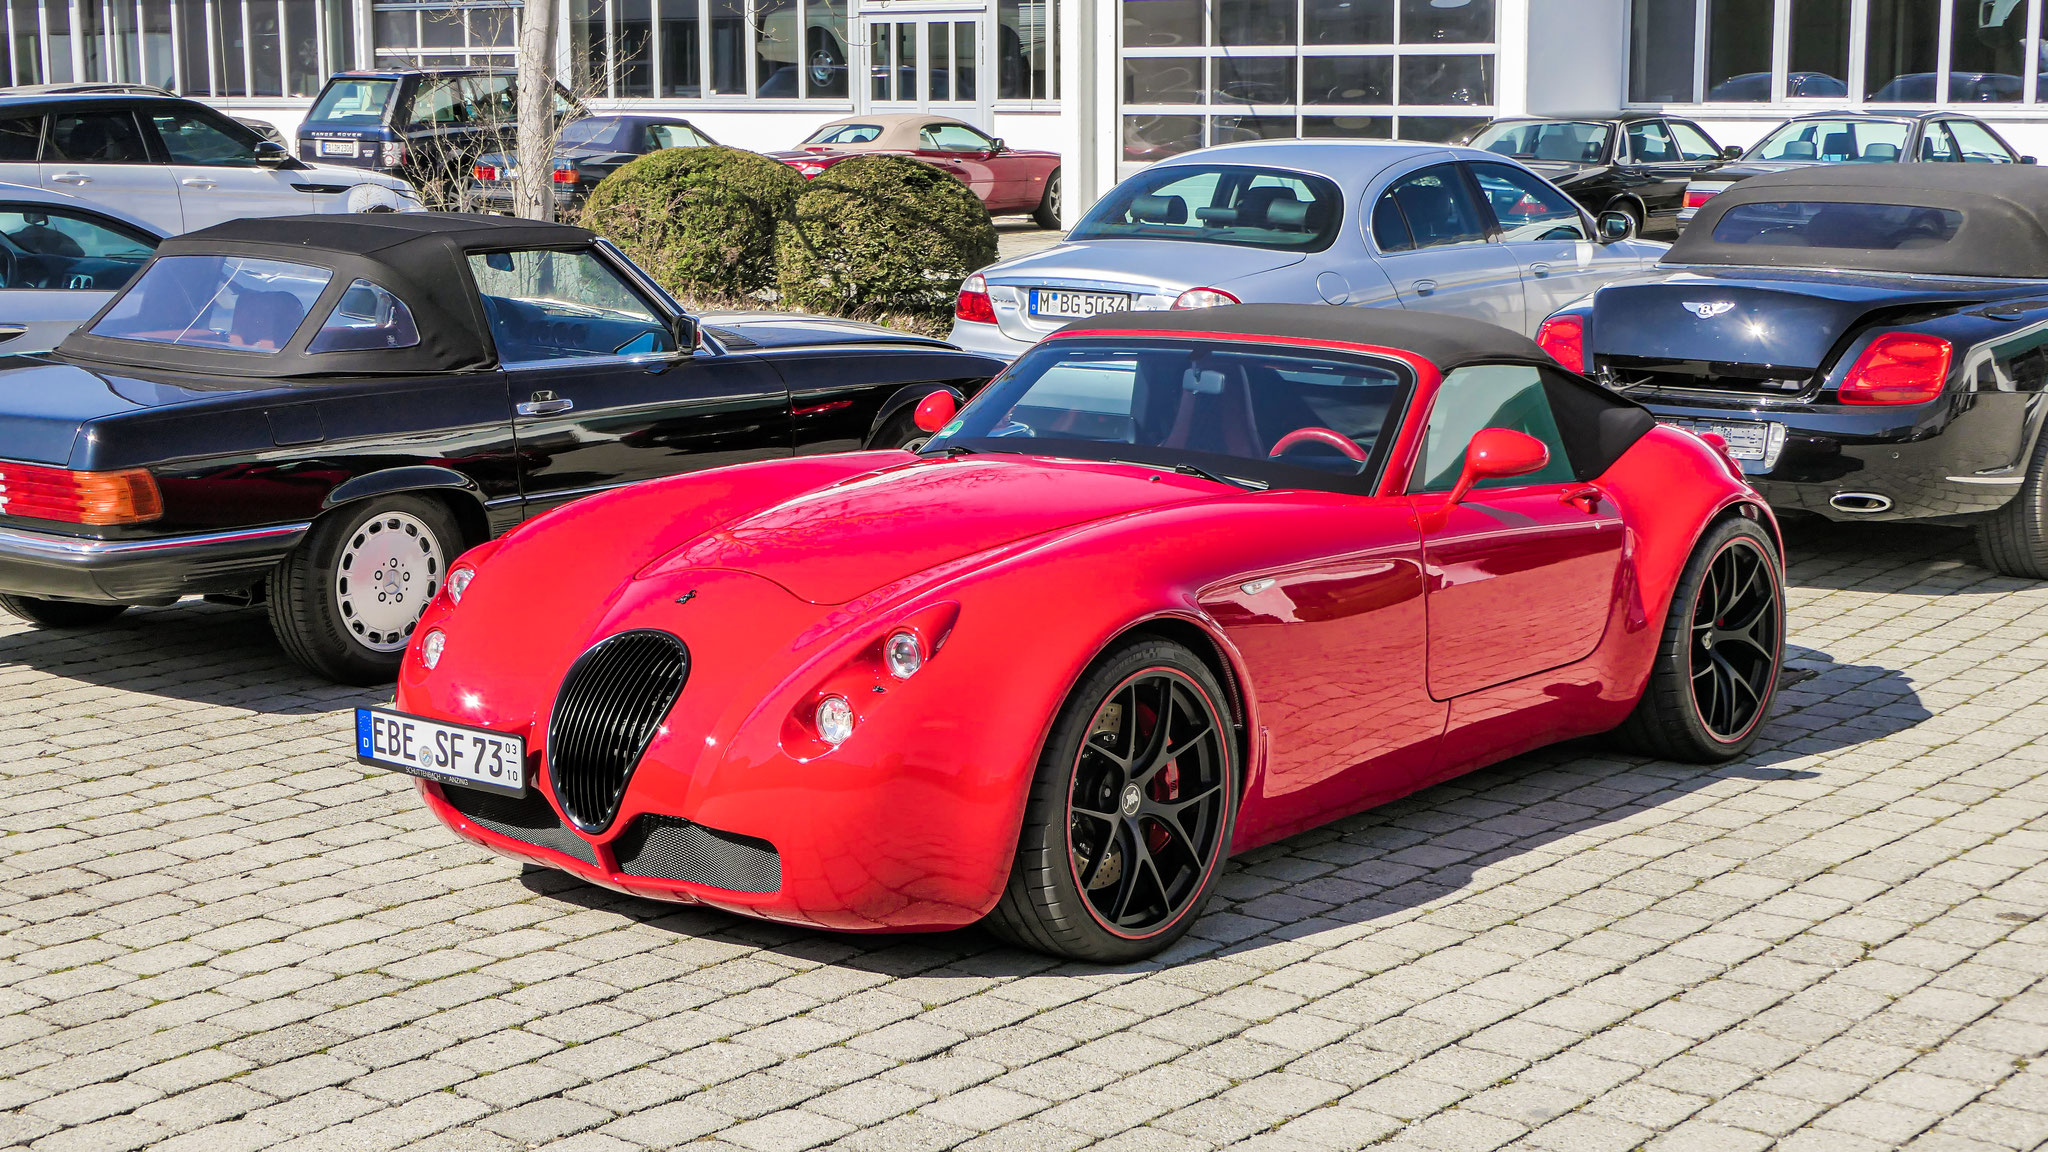 Wiesmann Roadster MF5 - EBE-SF-73